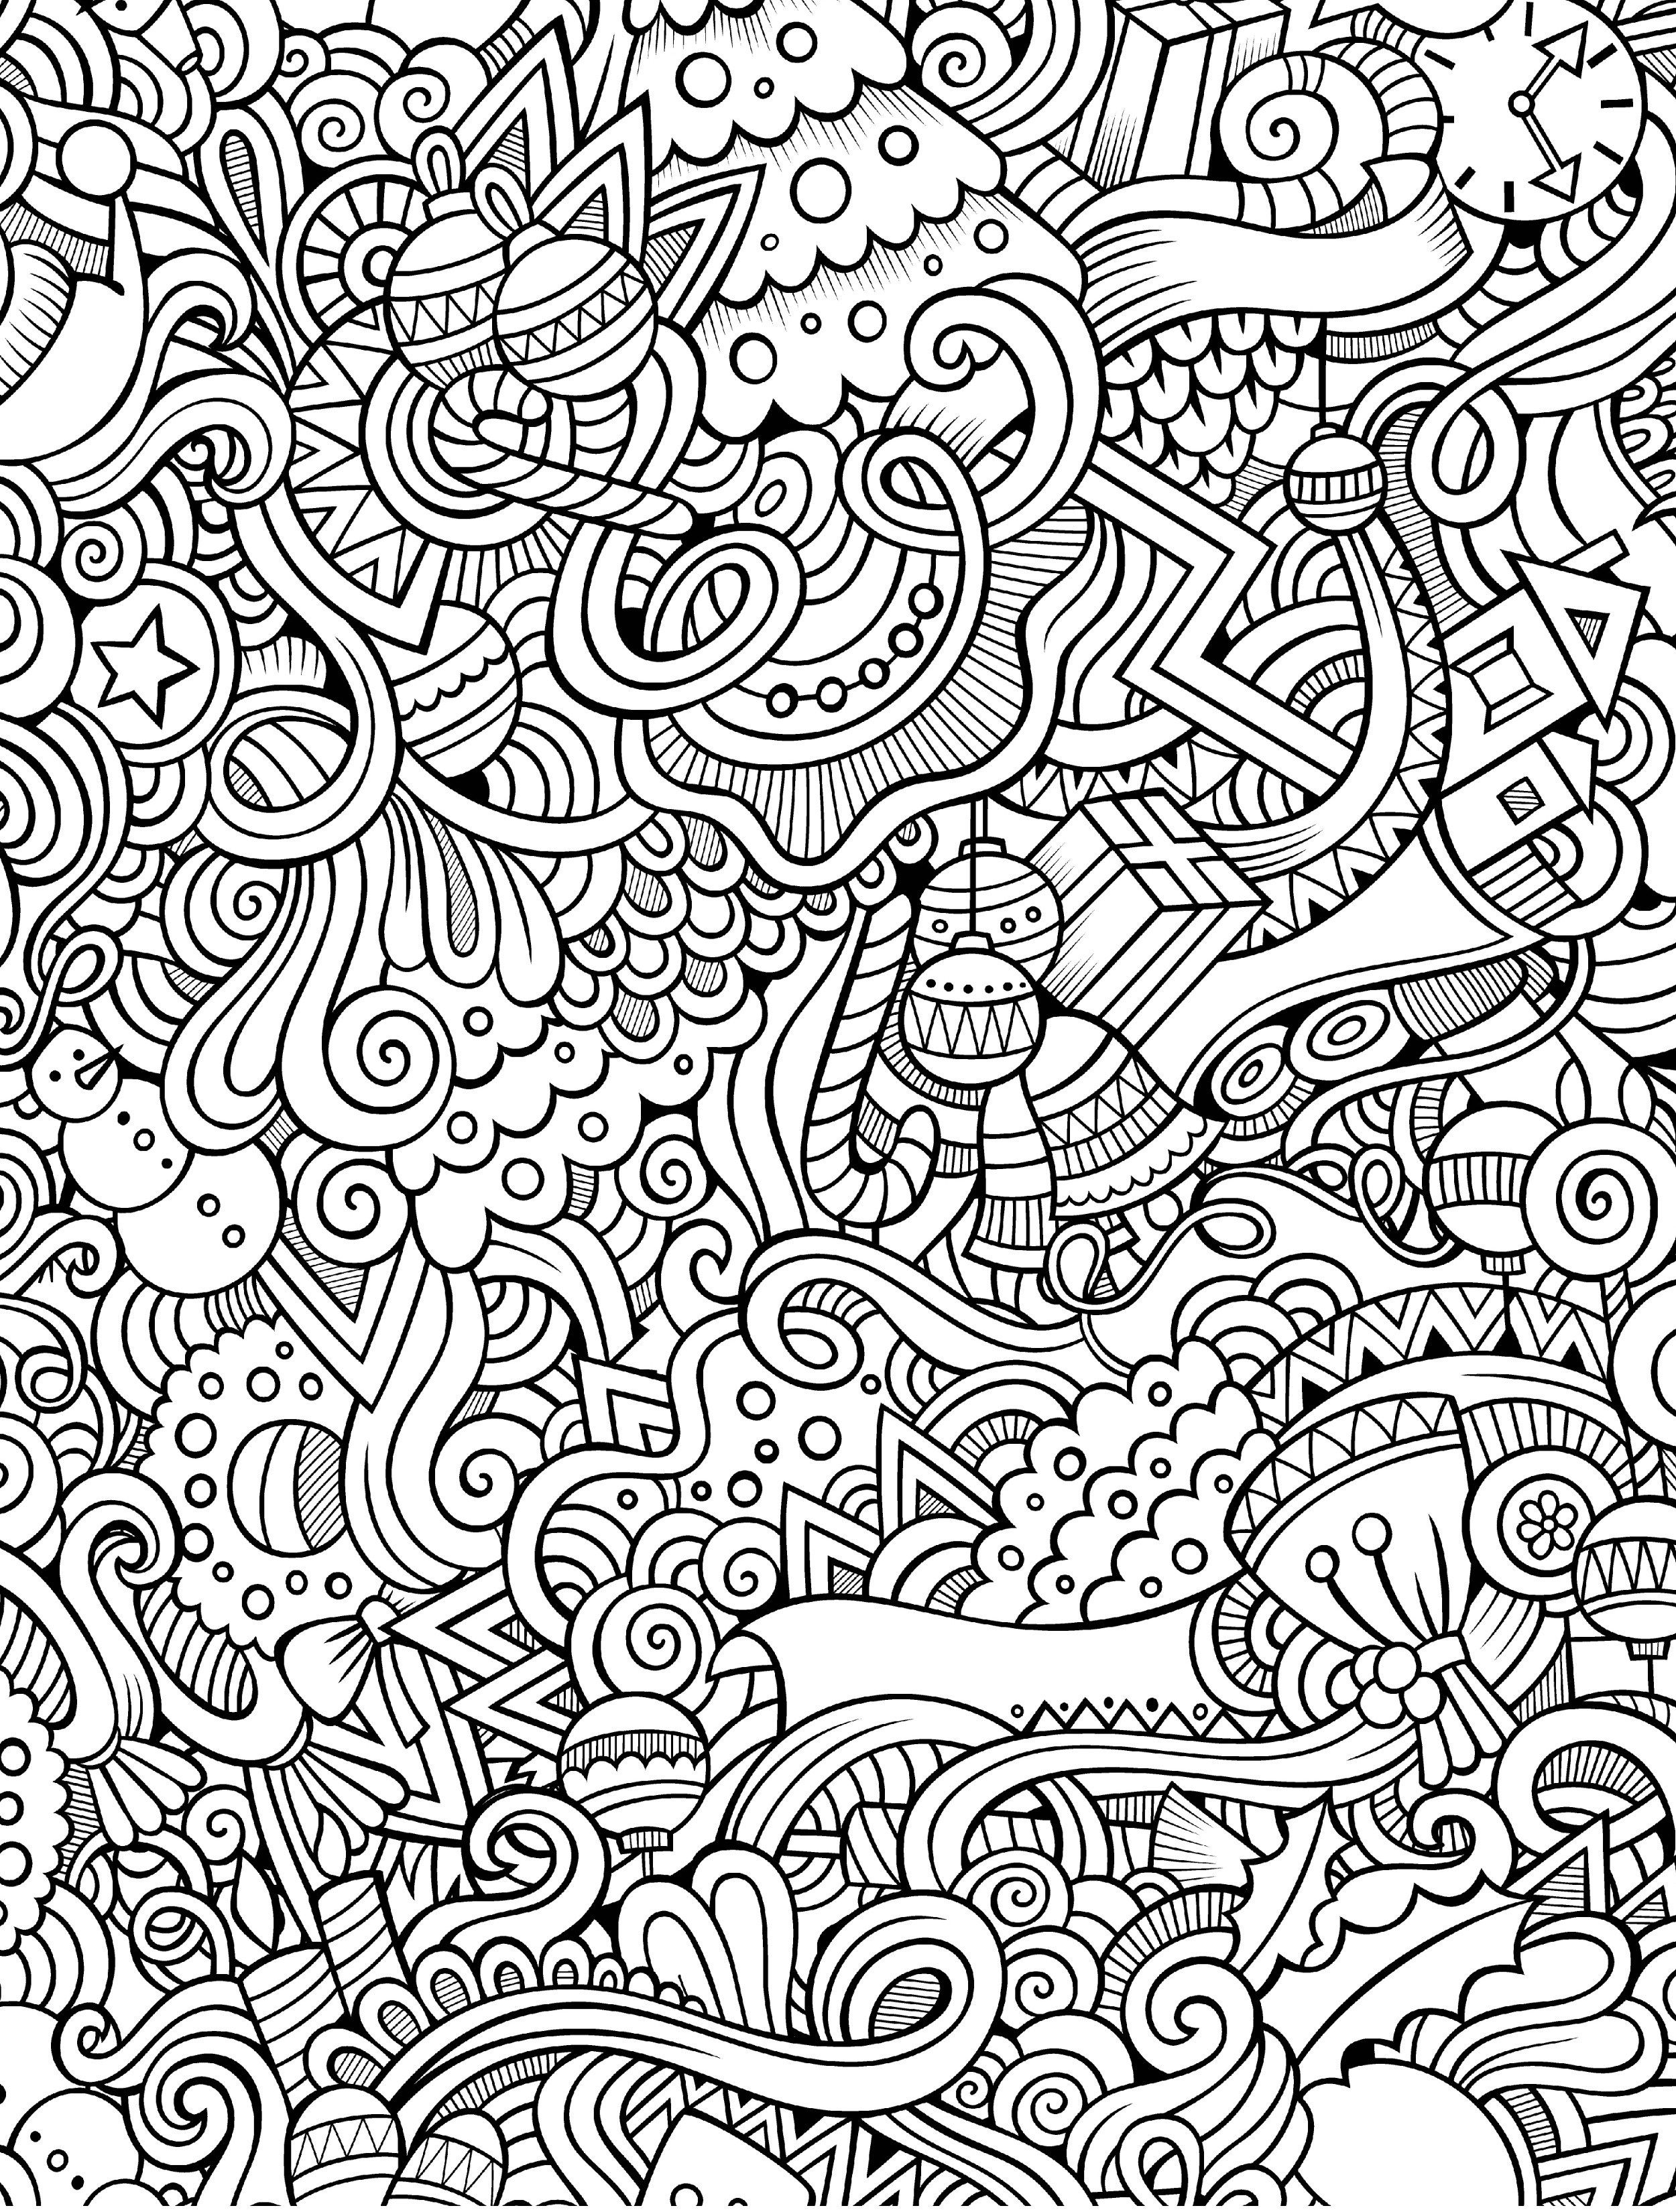 Christmas Coloring Pages For Adults Printable Free With 10 Holiday Adult